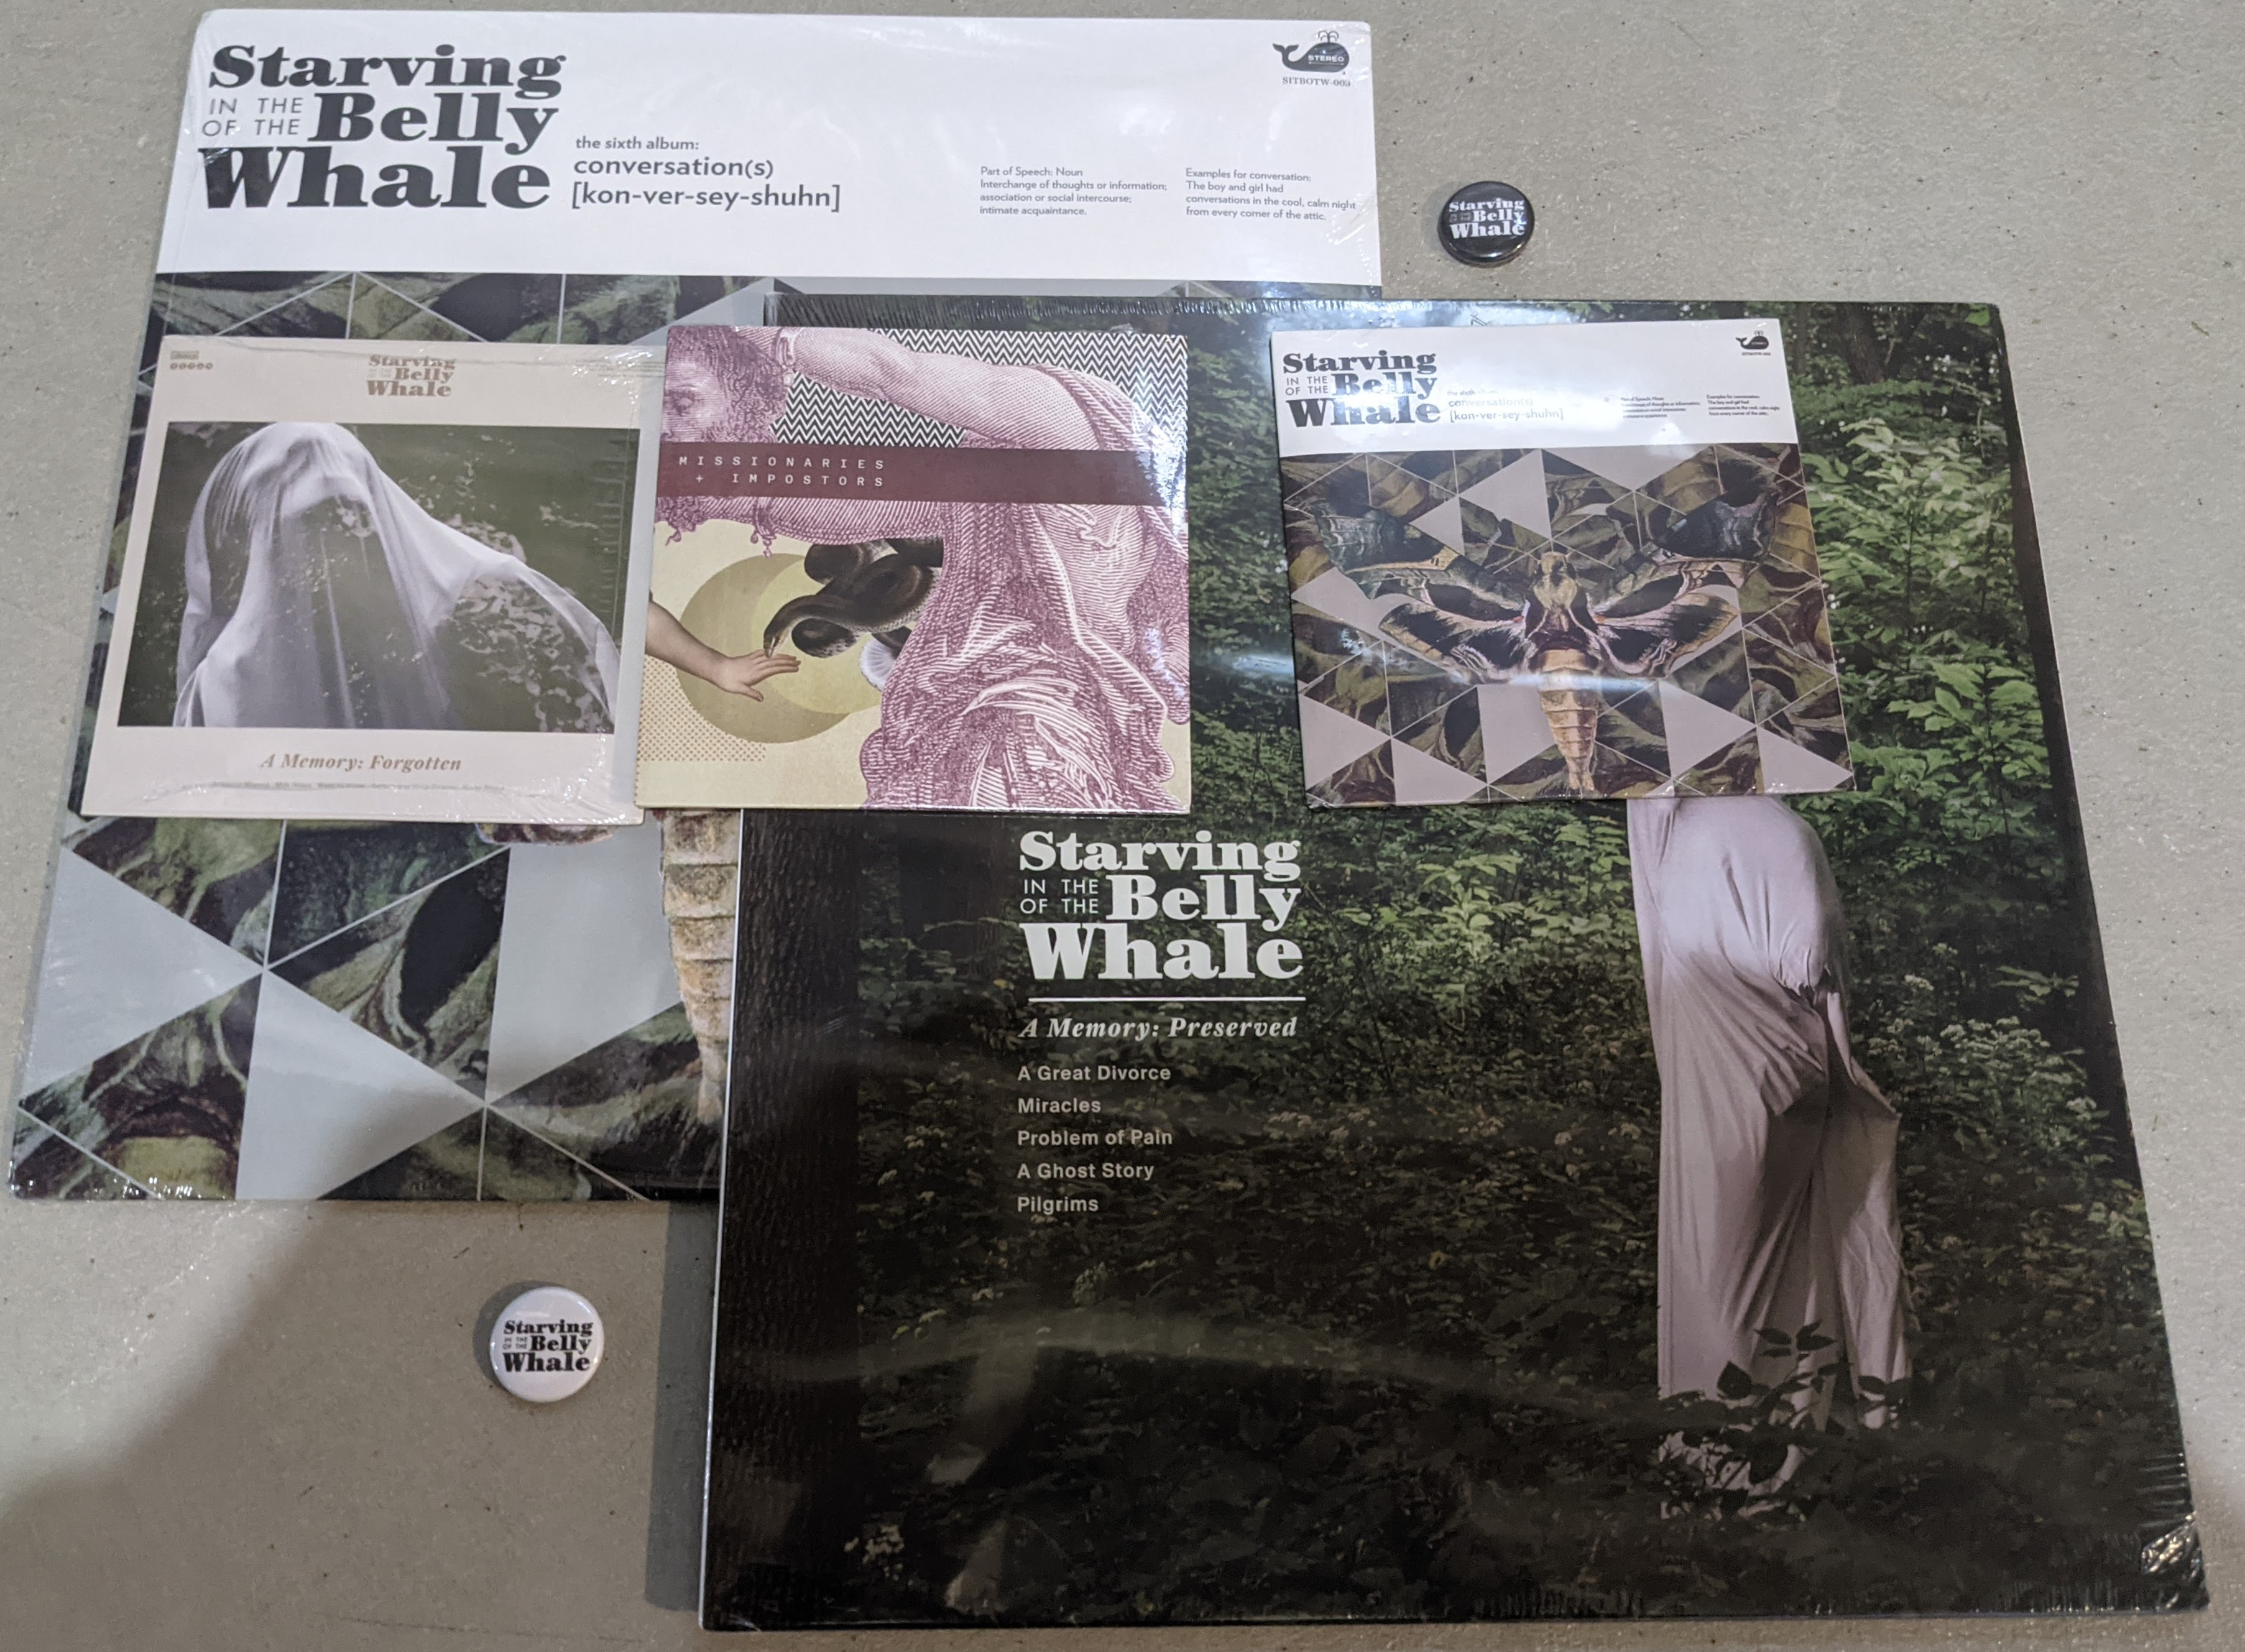 DISTRO - Starving in the Belly of the Whale 2 LP + 3 CD Bundle